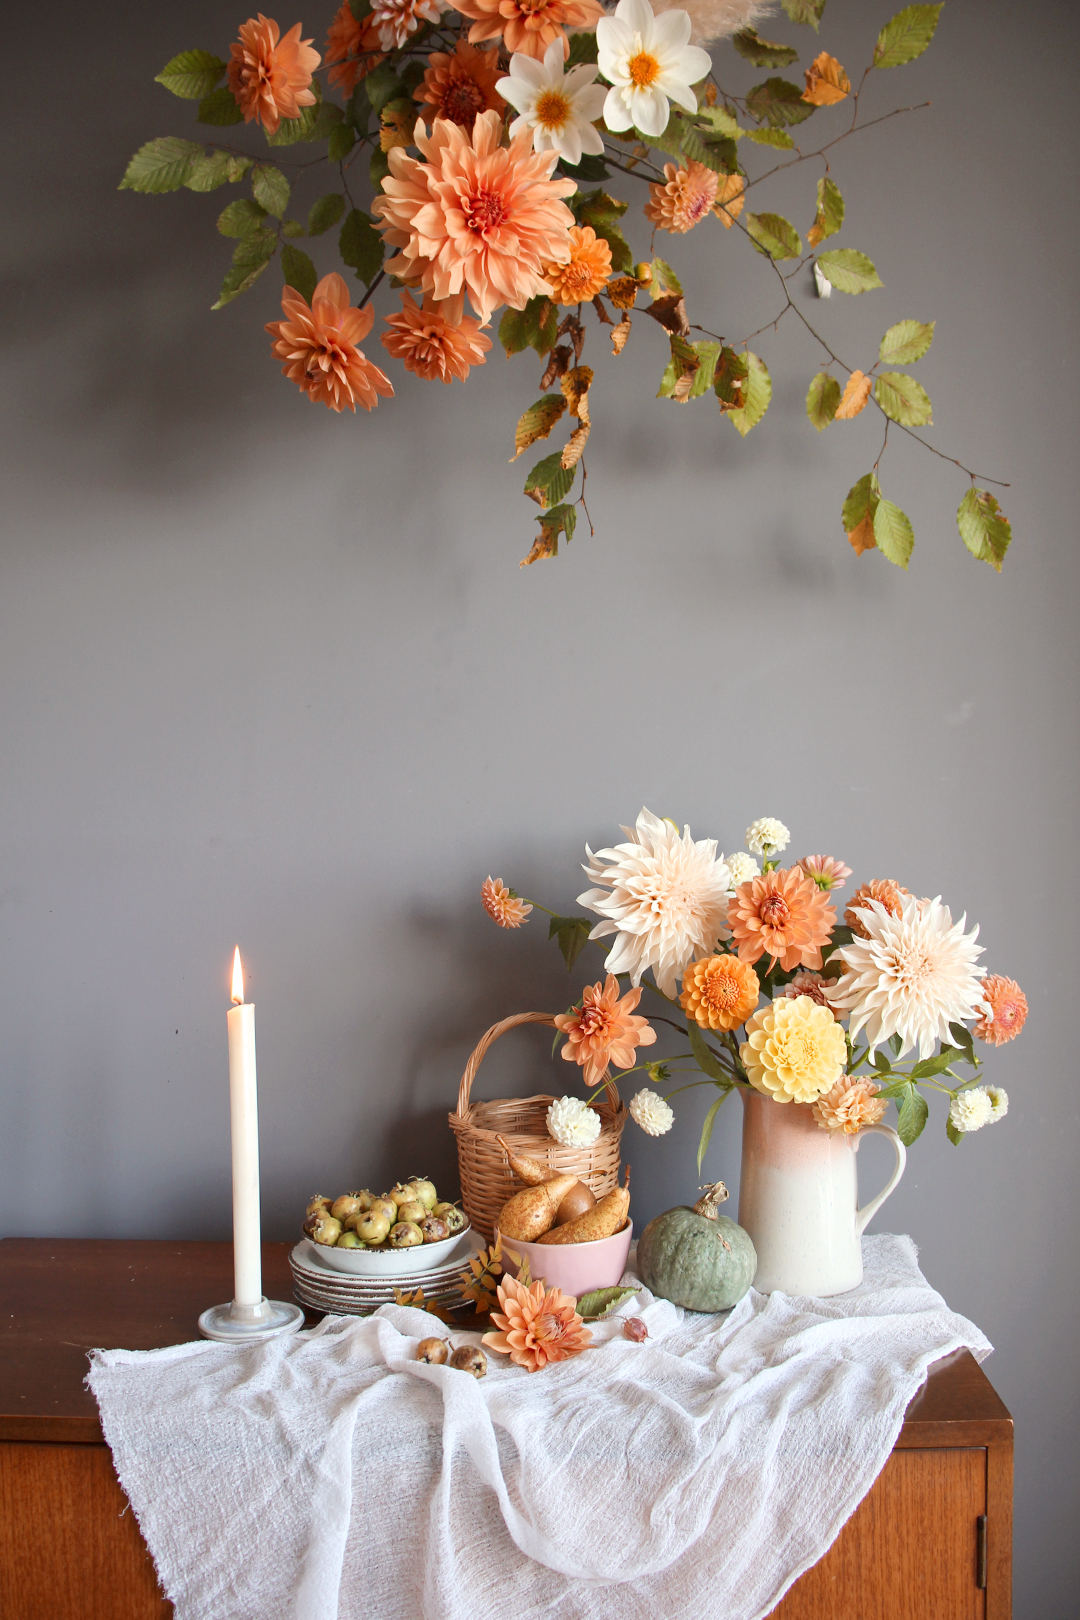 peach-rust-fall-styling-ideas-thanks-giving-nancy-straughan.jpg